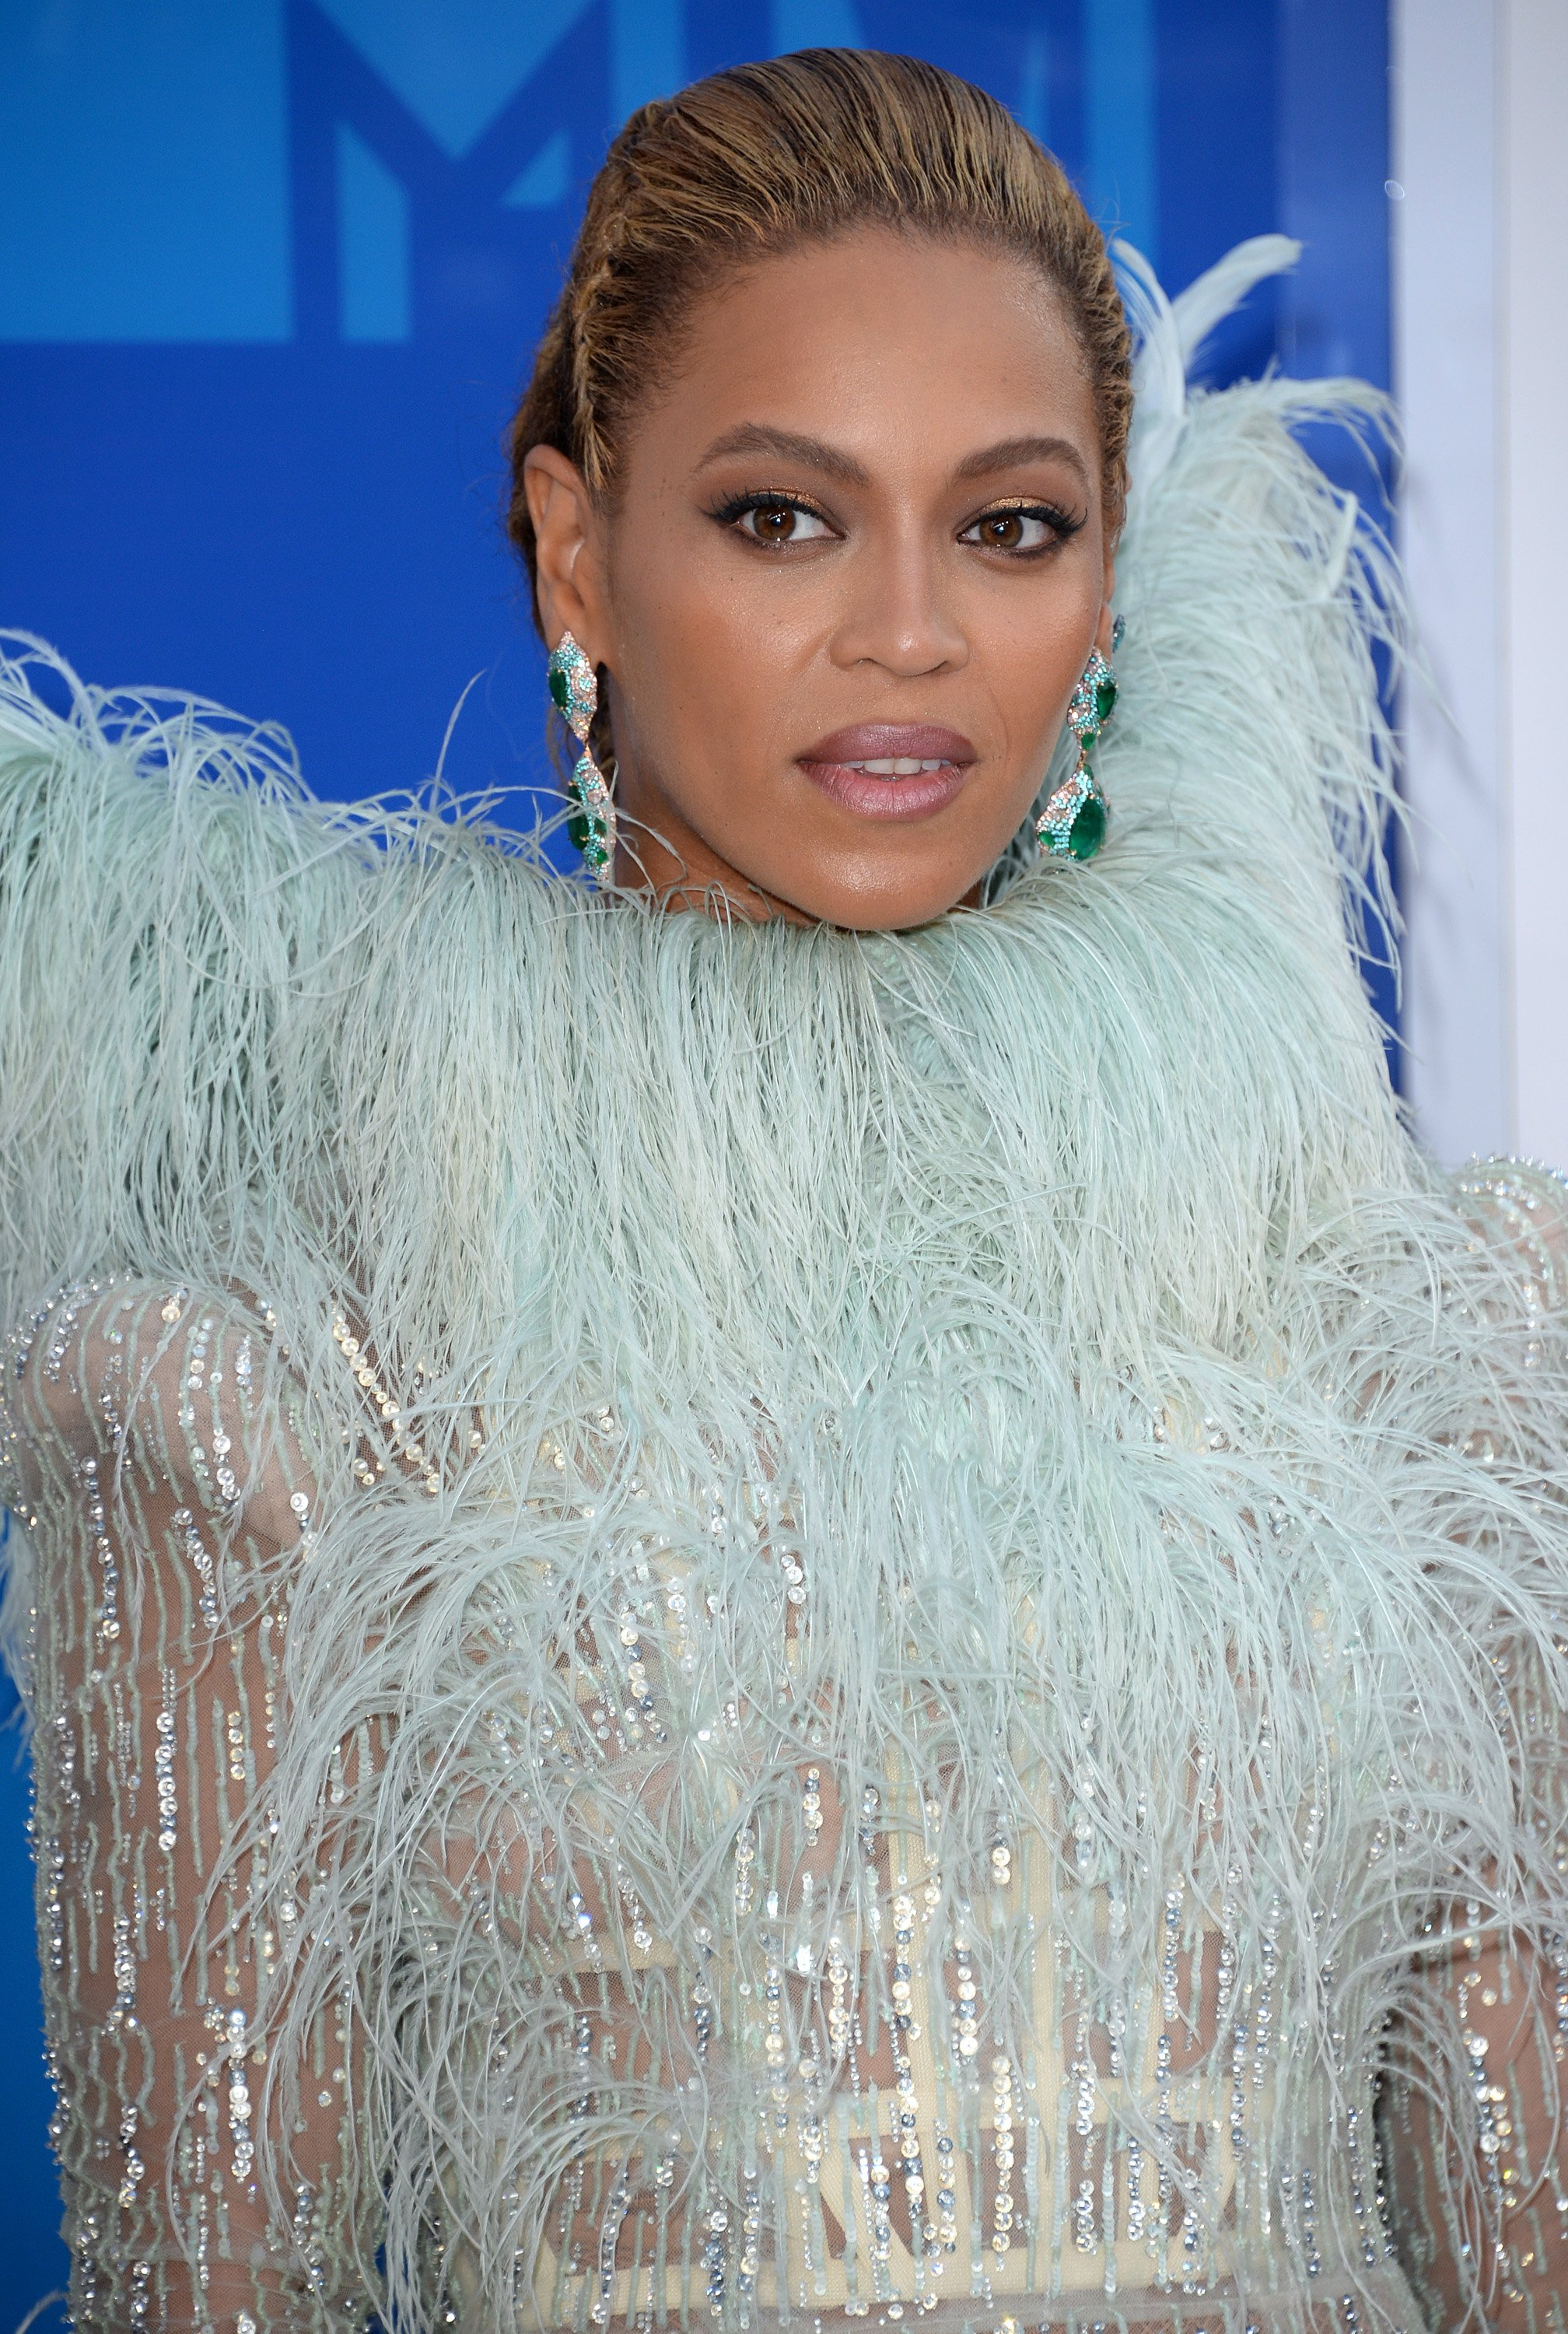 Beyoncé attends the 2016 MTV Video Music Awards at Madison Square Garden on August 28, 2016 in New York City l Source: Getty Images